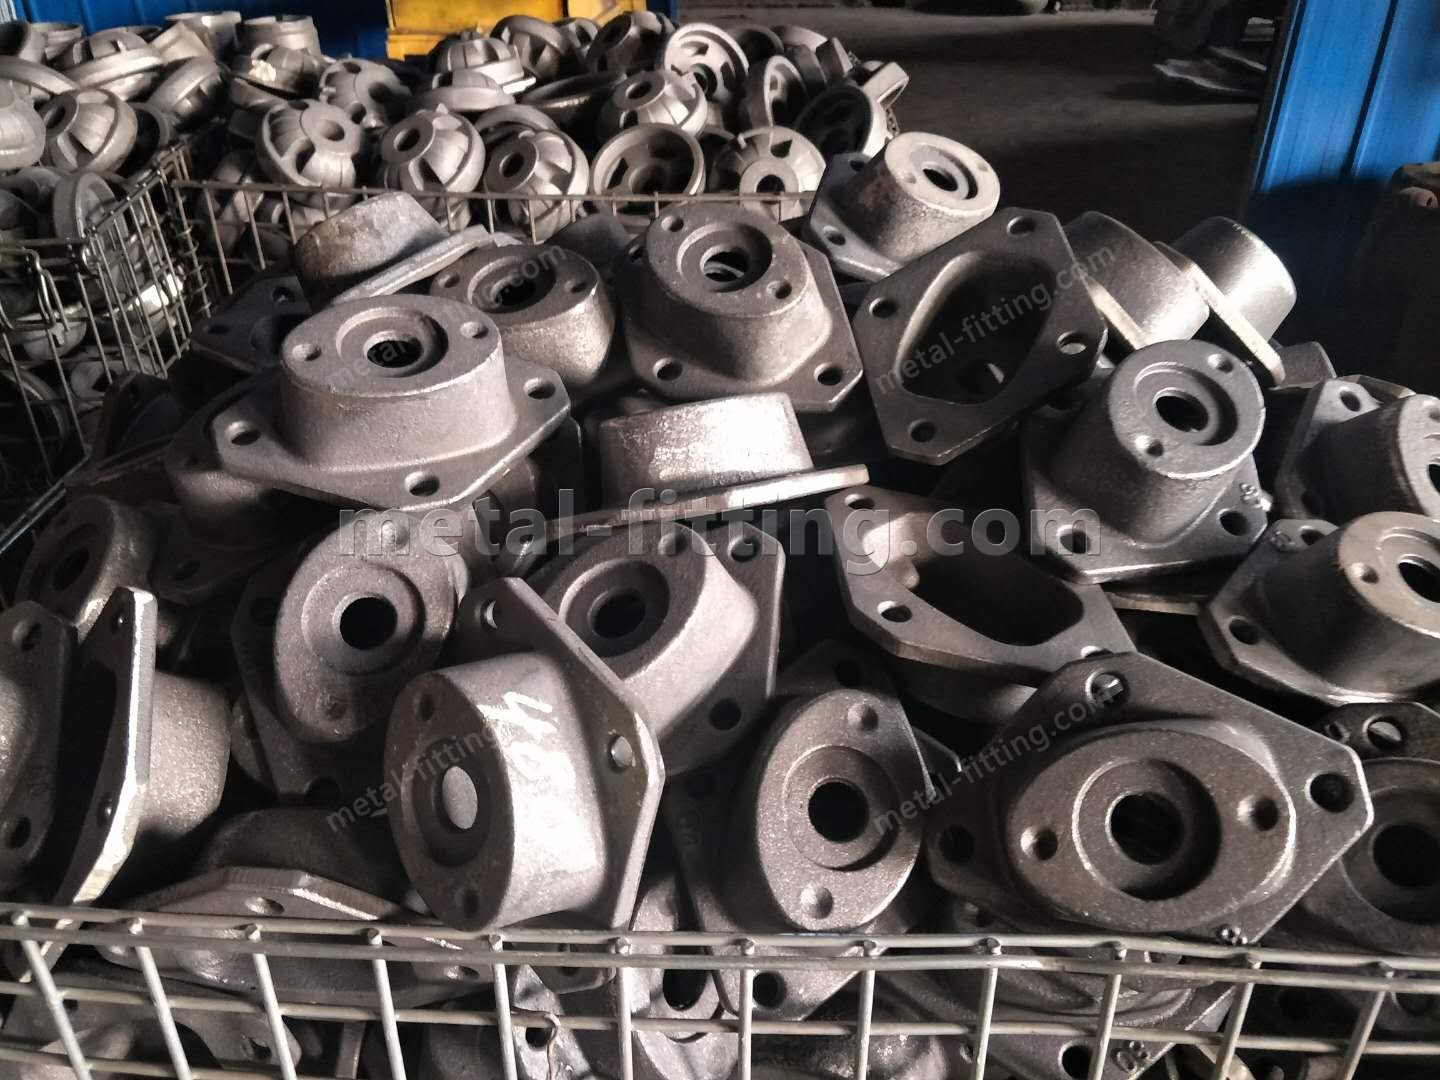 pully,cast iron pully,iron gear ring for concrete mixer-915582042696697170